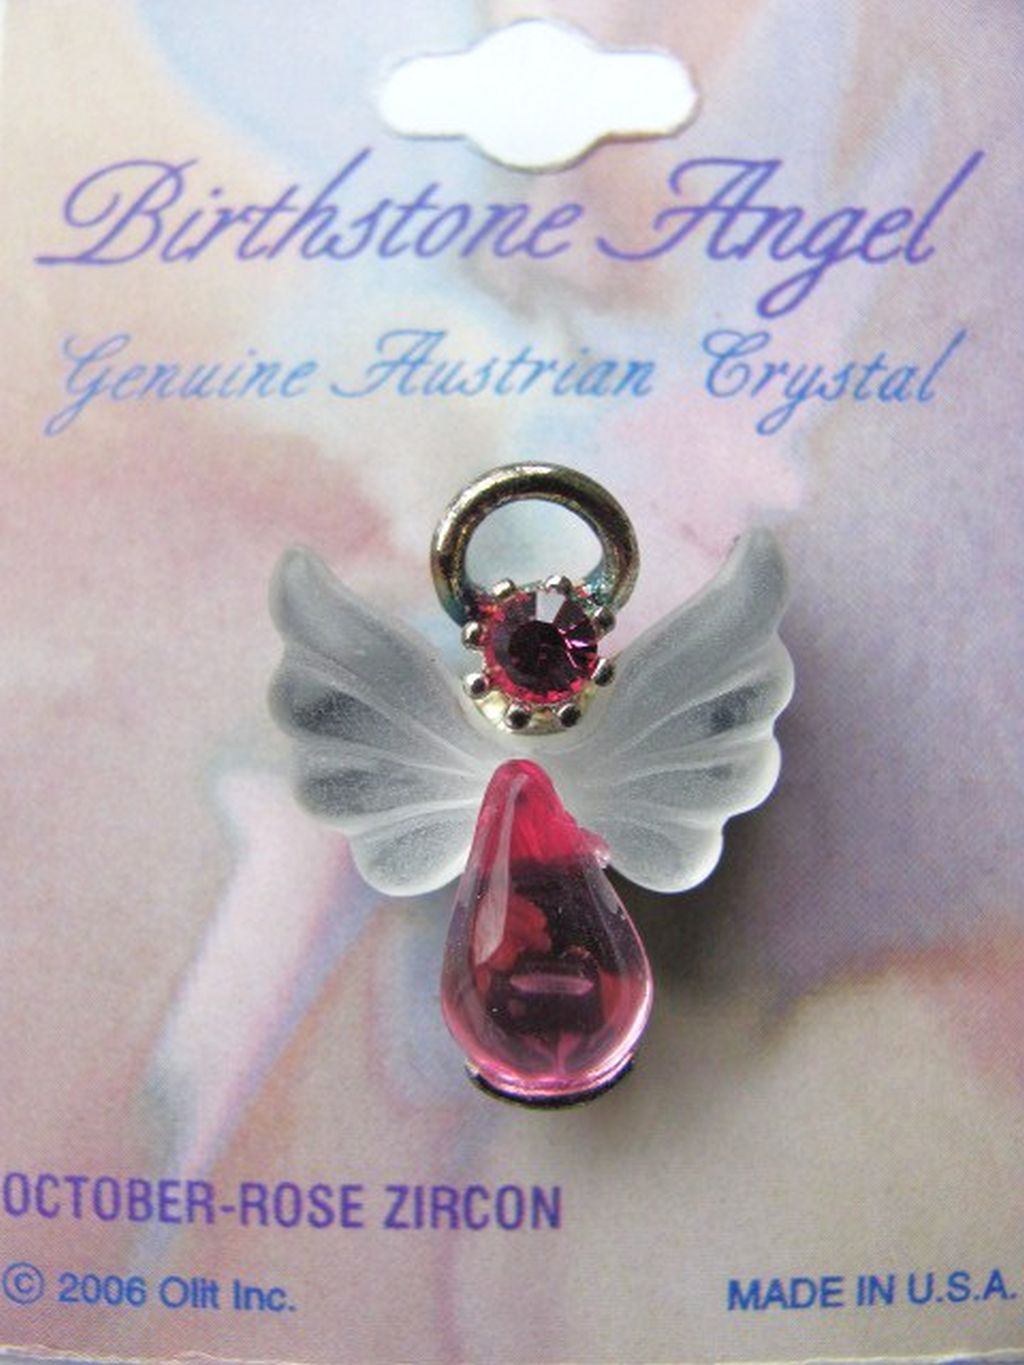 Rose Zircon October Birthstone Angel Pin, Genuine Austrian Crystals